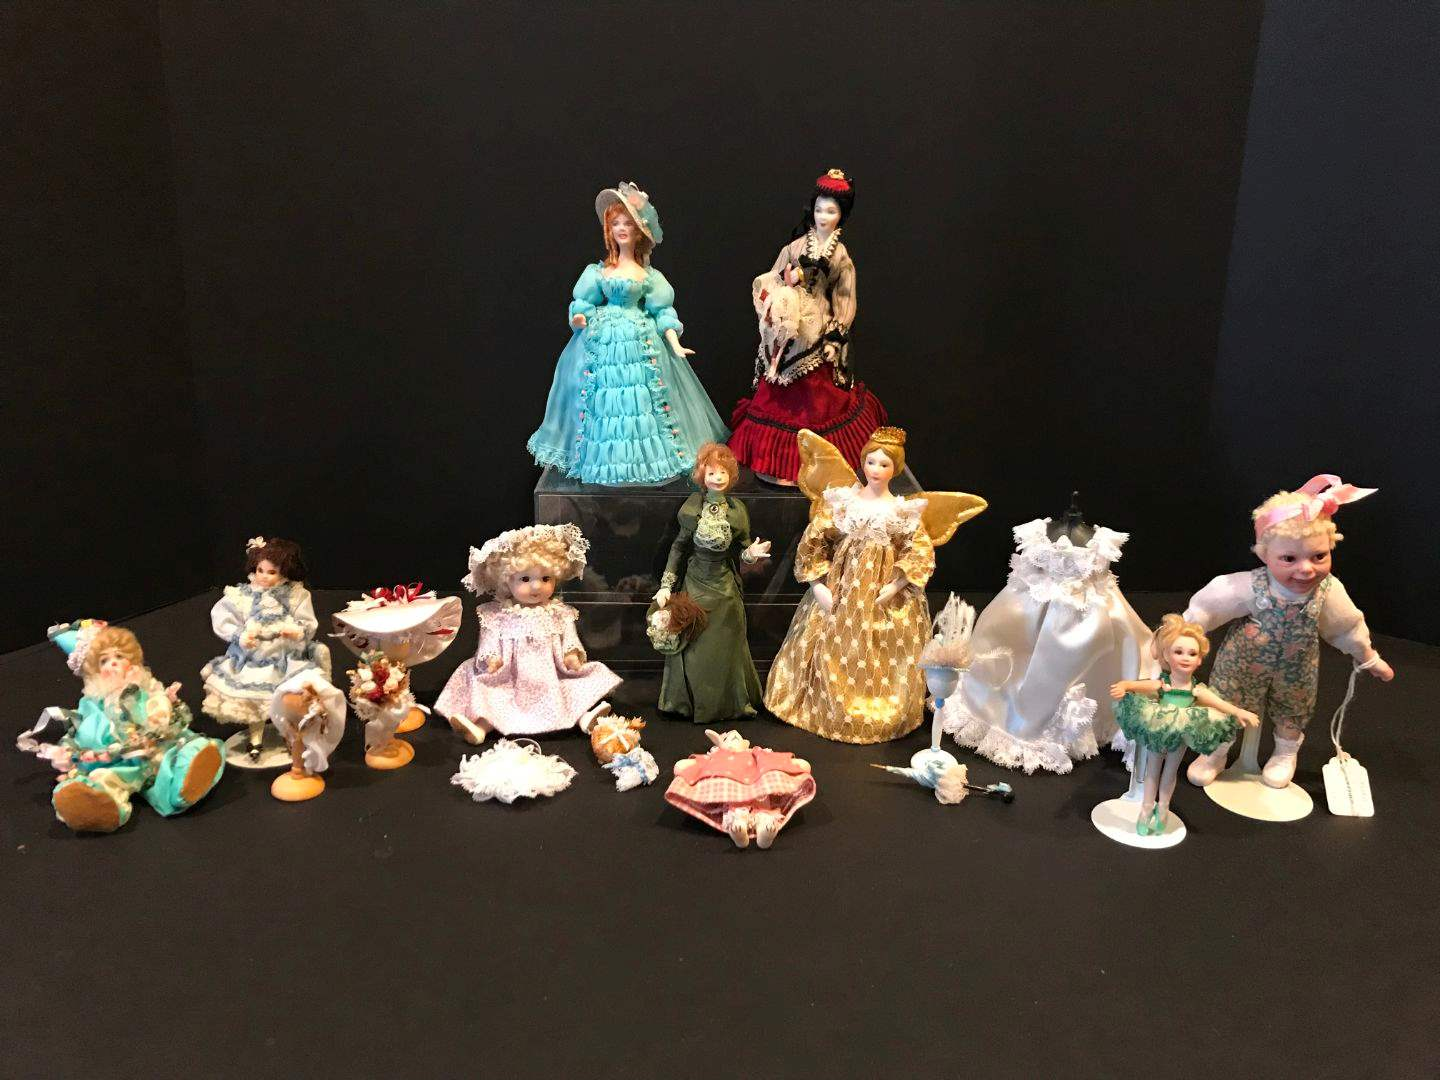 Lot # 168 - Porcelain Doll, One Wood Doll & Accessories  (main image)